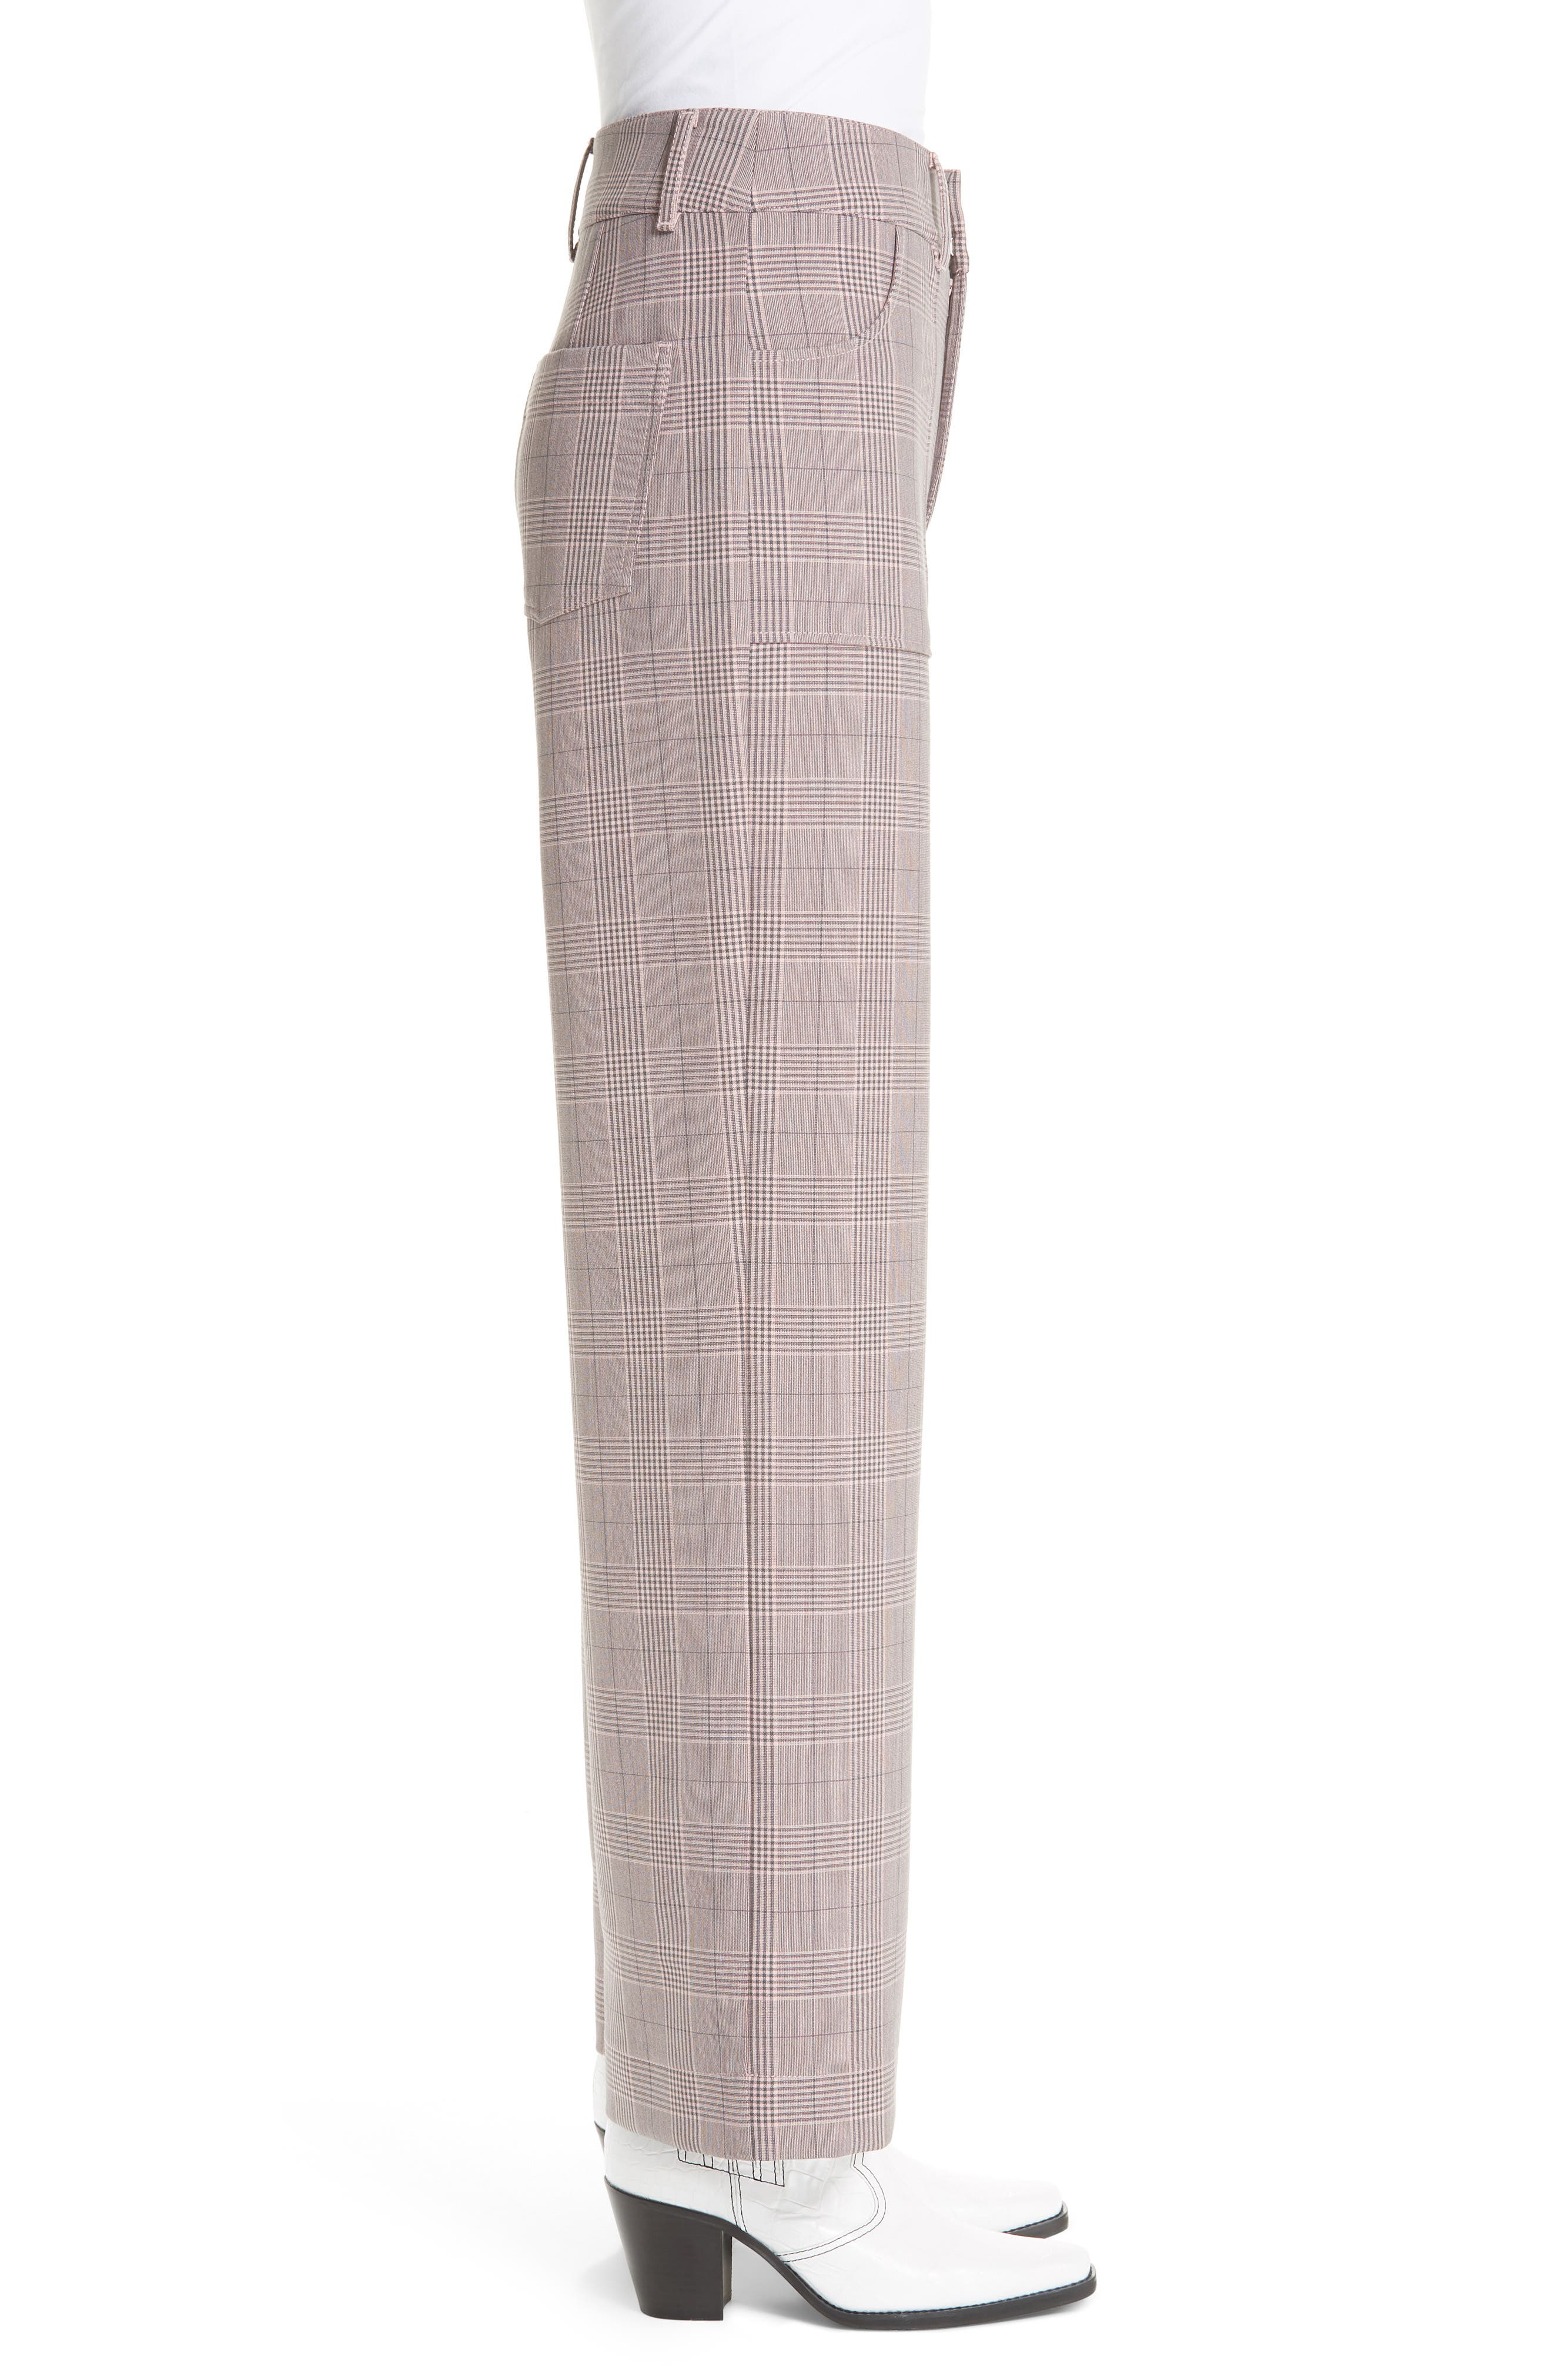 GANNI,                             Suiting Pants,                             Alternate thumbnail 3, color,                             SILVER PINK 499